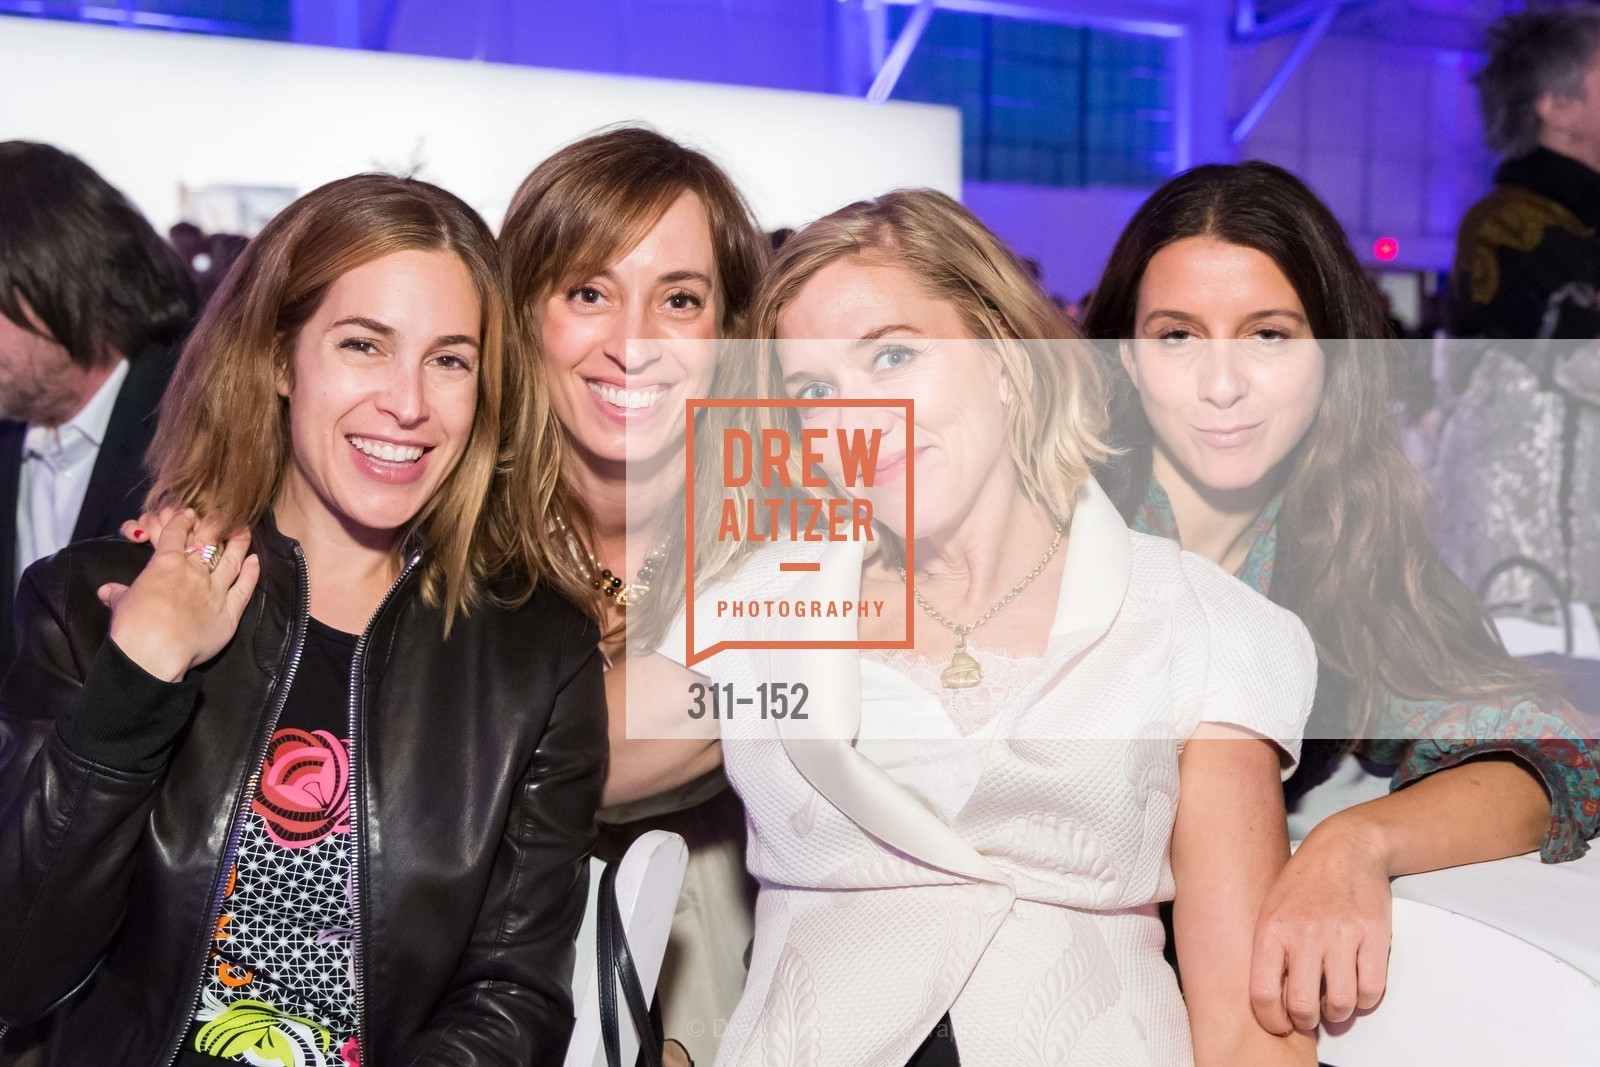 Alison Pincus, Caroline Shlain, Lara Deam, Maca Huneeus, Headlands Center for the Arts Benefit Auction, Fort Mason Festival, Pavilon, June 2nd, 2015,Drew Altizer, Drew Altizer Photography, full-service agency, private events, San Francisco photographer, photographer california